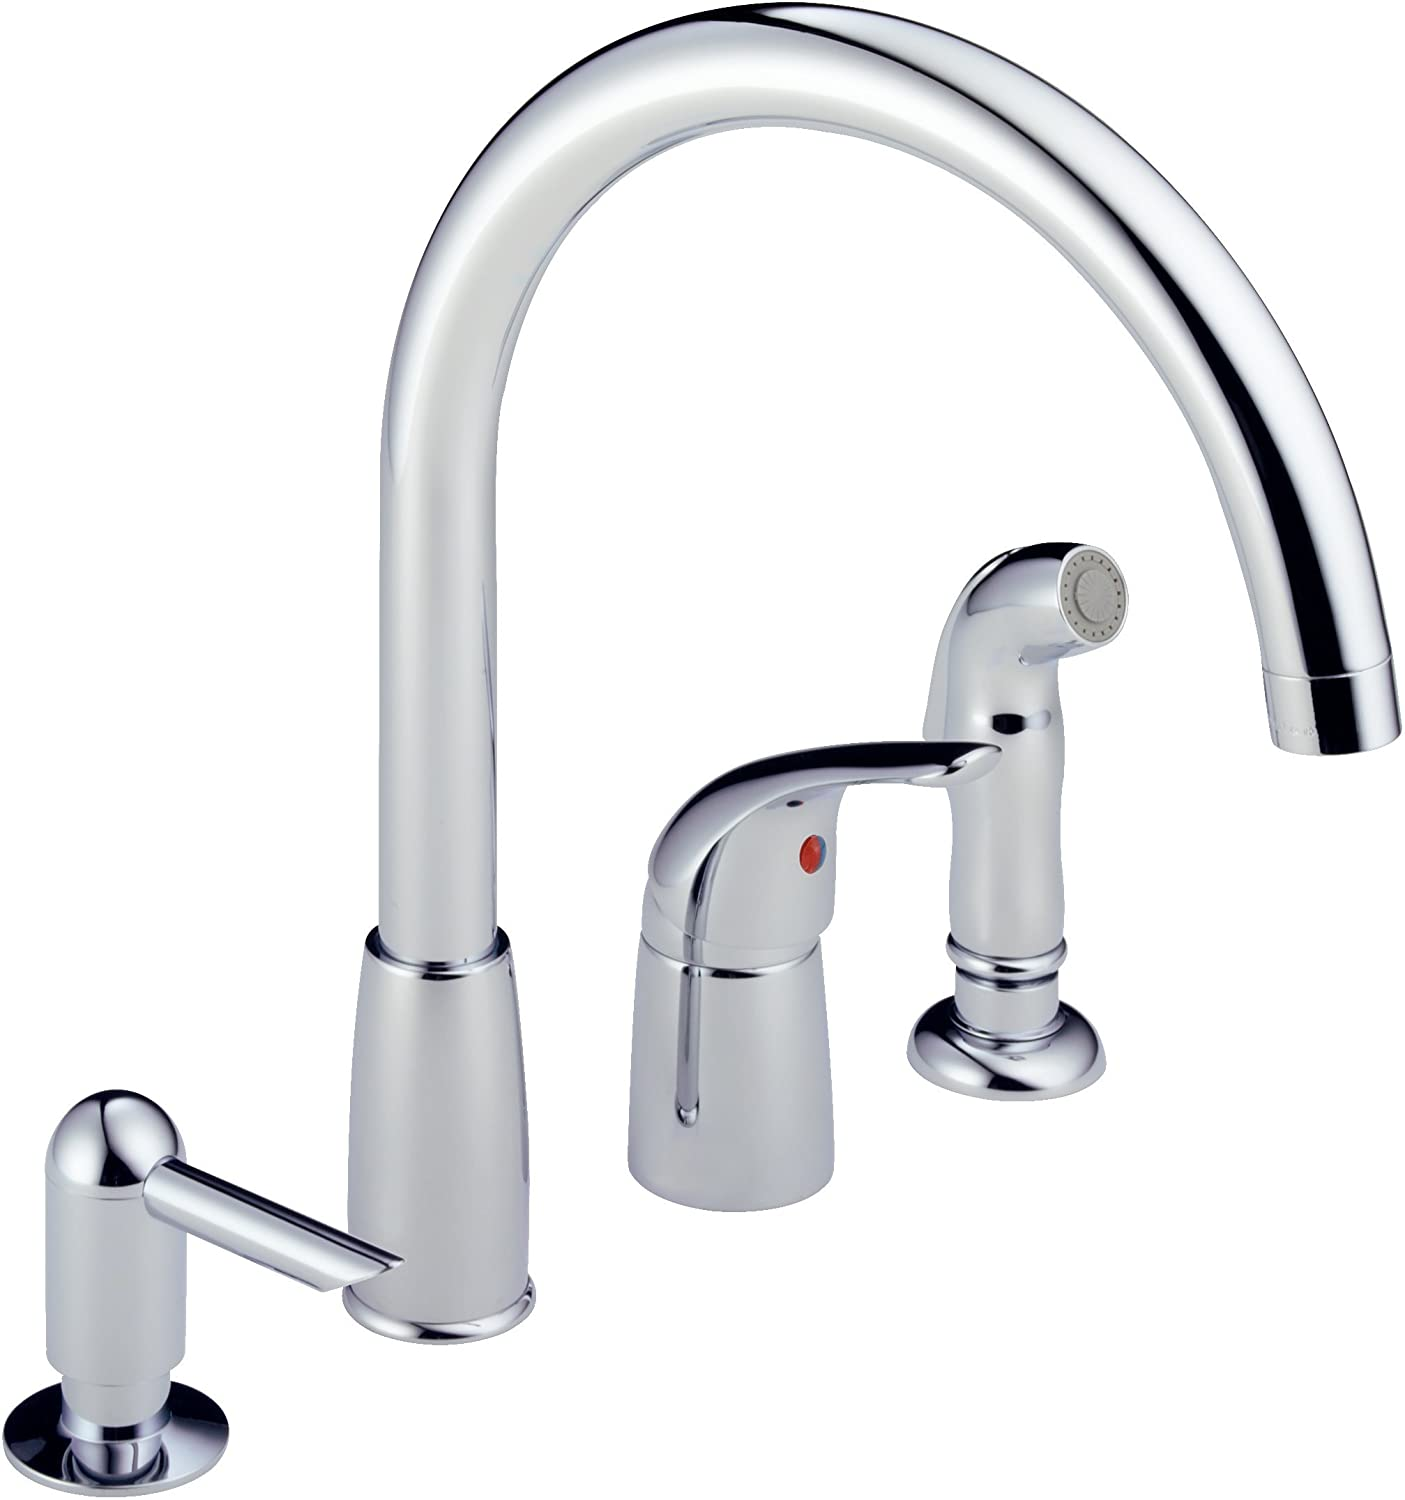 Peerless P88900LF Waterfall Single Handle Widespread Kitchen Faucet, Chrome    Touch On Kitchen Sink Faucets   Amazon.com